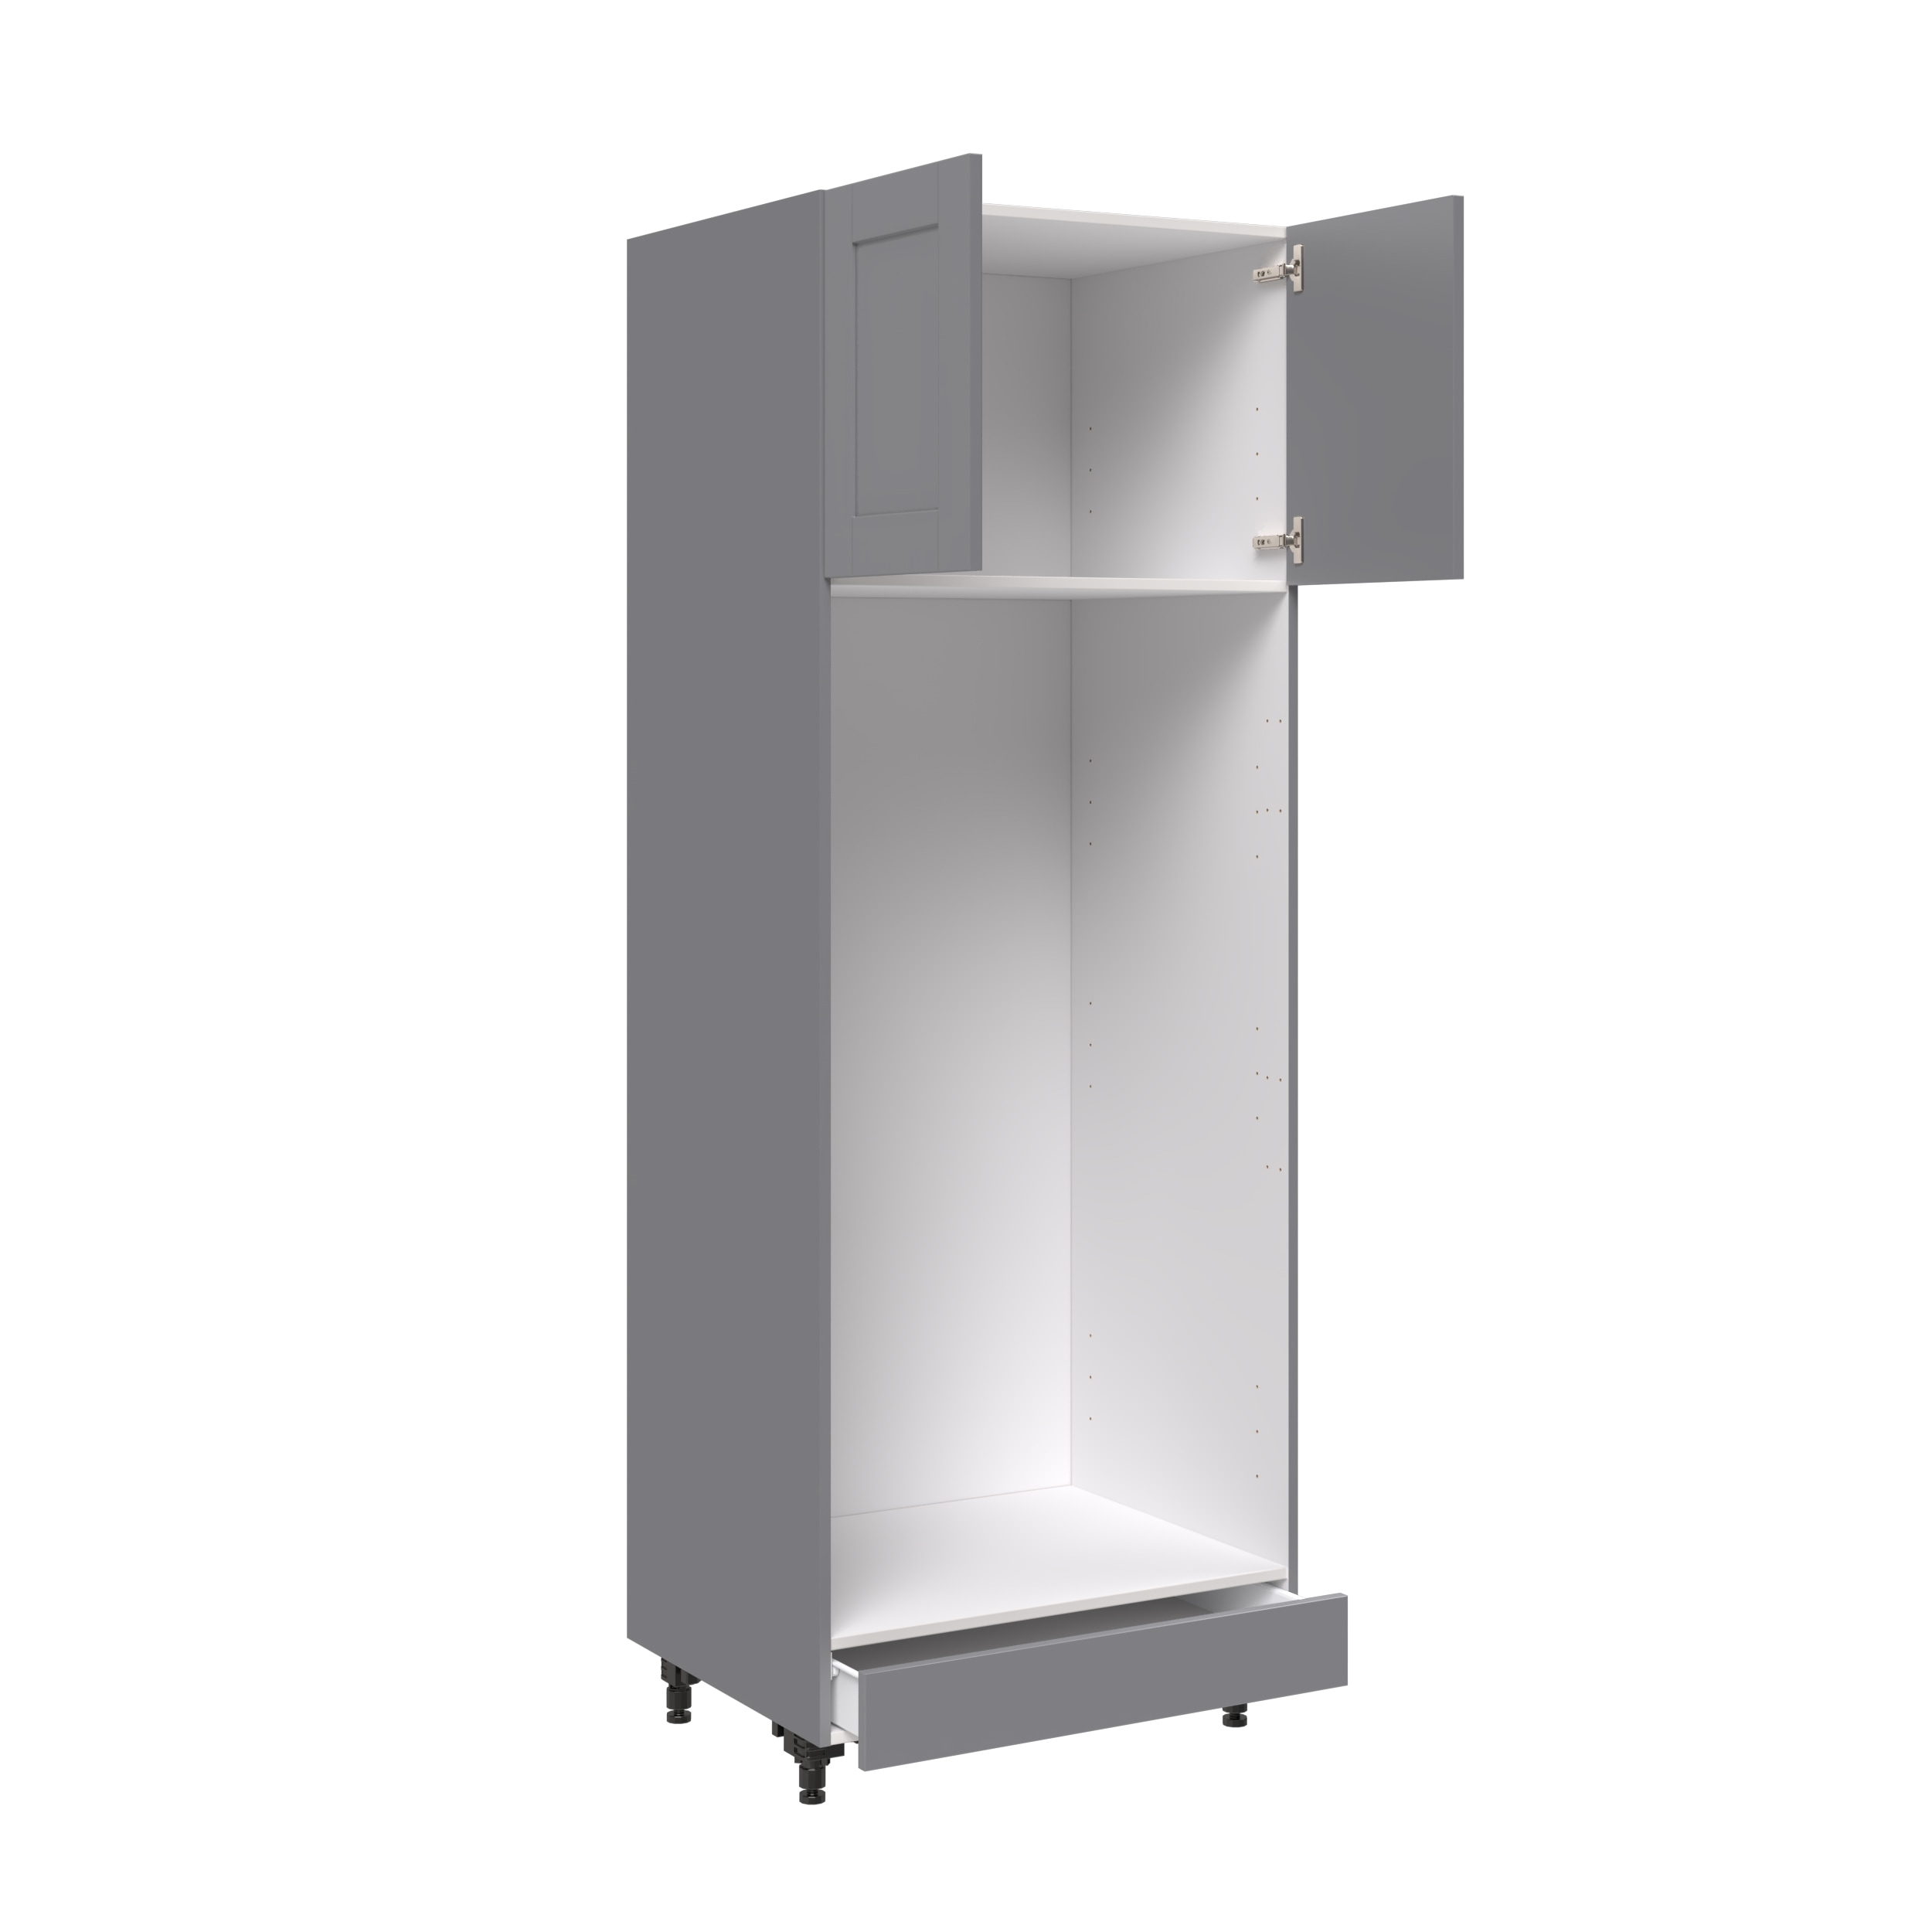 30 Tall For Double Oven With 2 Doors And 1 Drawer